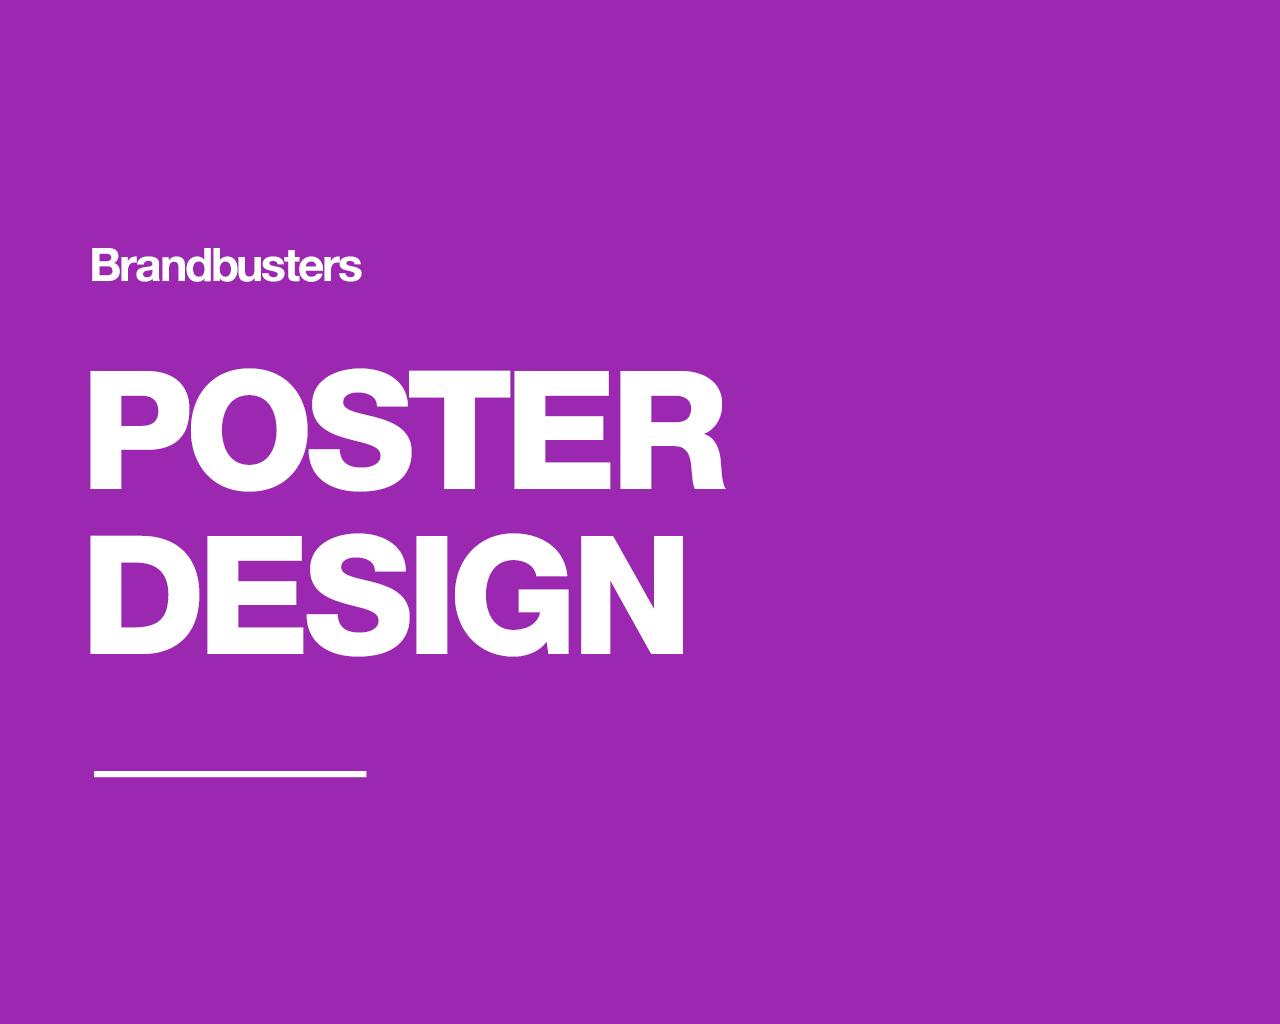 Professional Poster & Flyer Design by Brandbusters - 110651